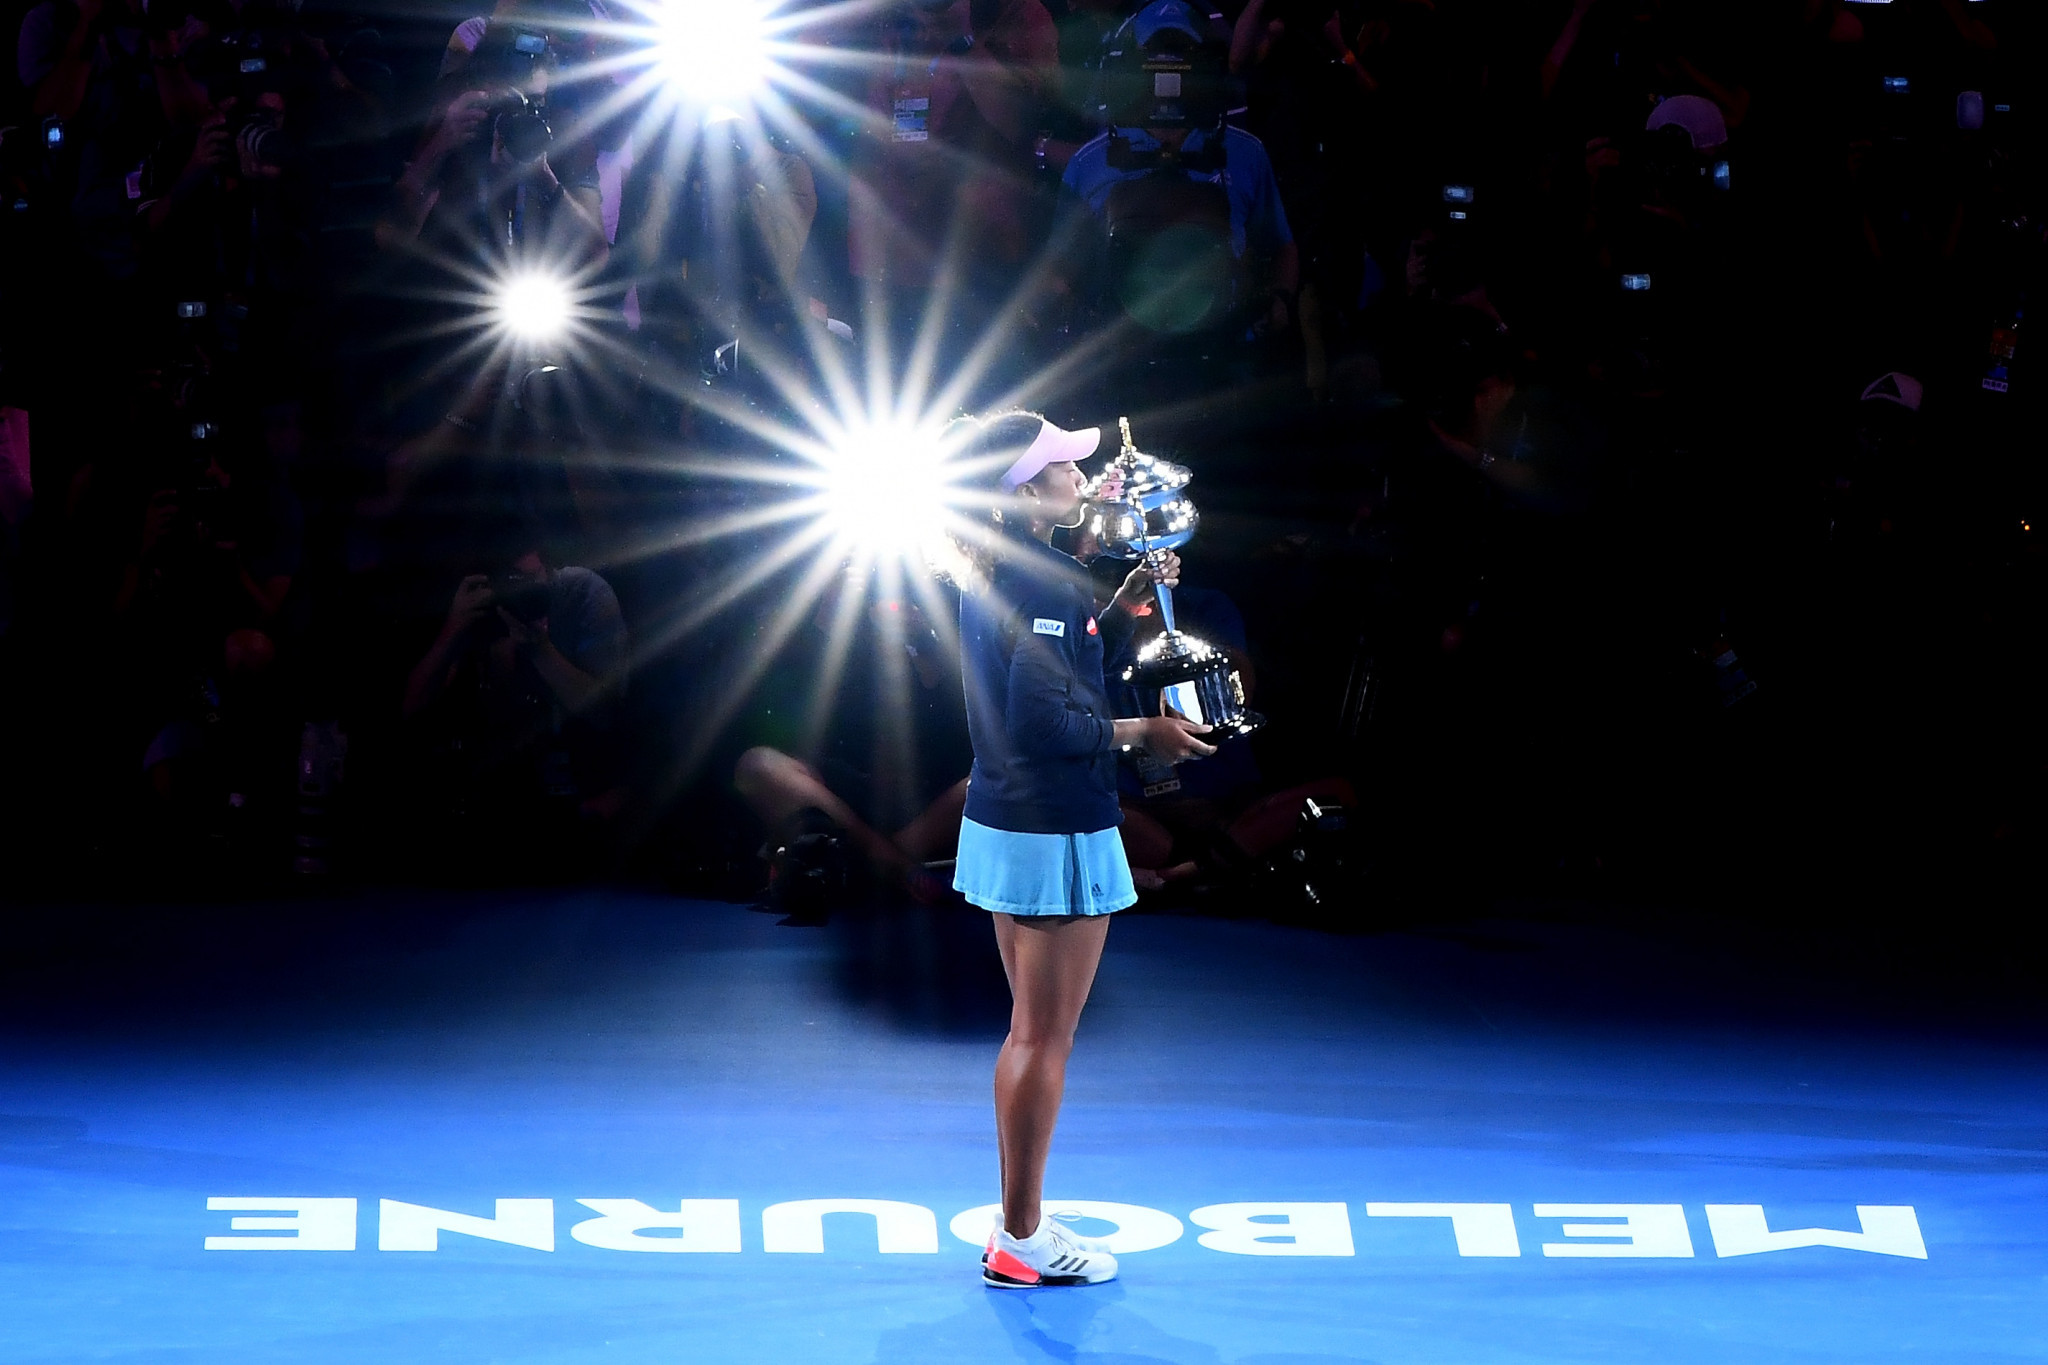 Osaka clinches Australian Open title after three set battle with Kvitová